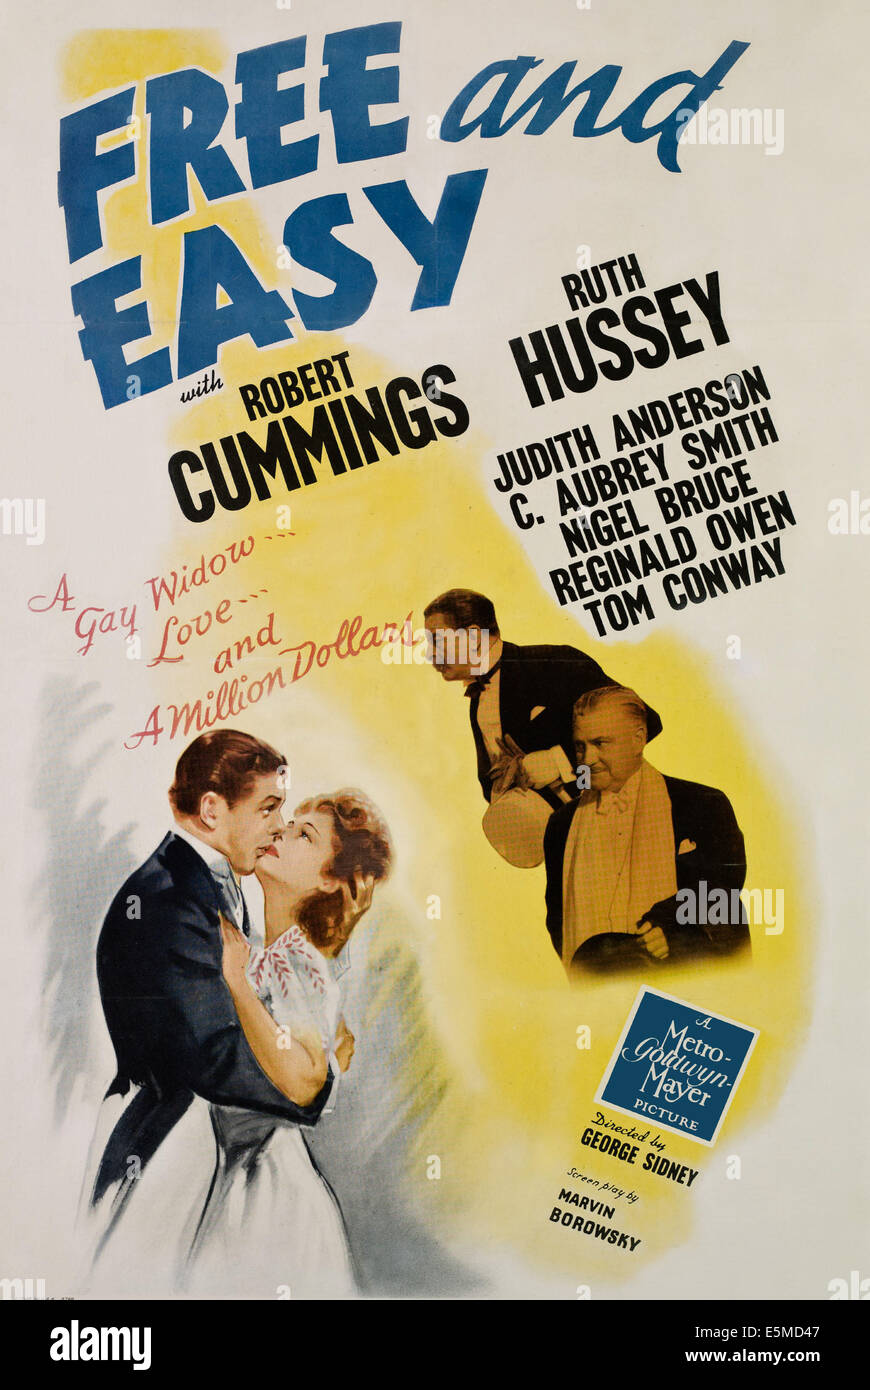 FREE AND EASY, from left, Robert Cummings, Ruth Hussey, Reginald Owen, Nigel Bruce, 1941 - Stock Image